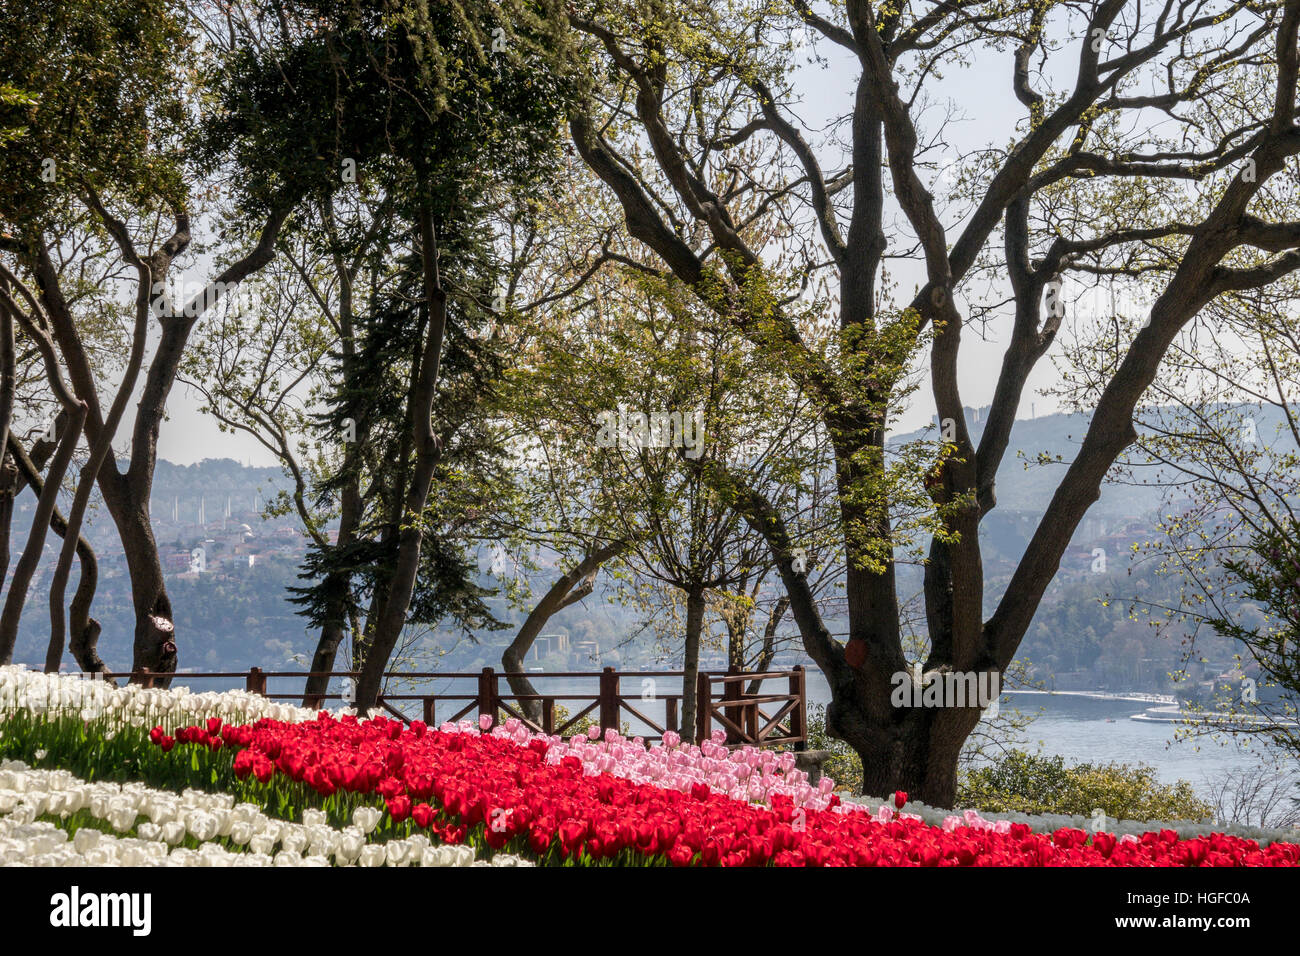 The Emirgan Park  is a historical urban park located at the Emirgan neighbourhood in the Sariyer district of Istanbul, - Stock Image